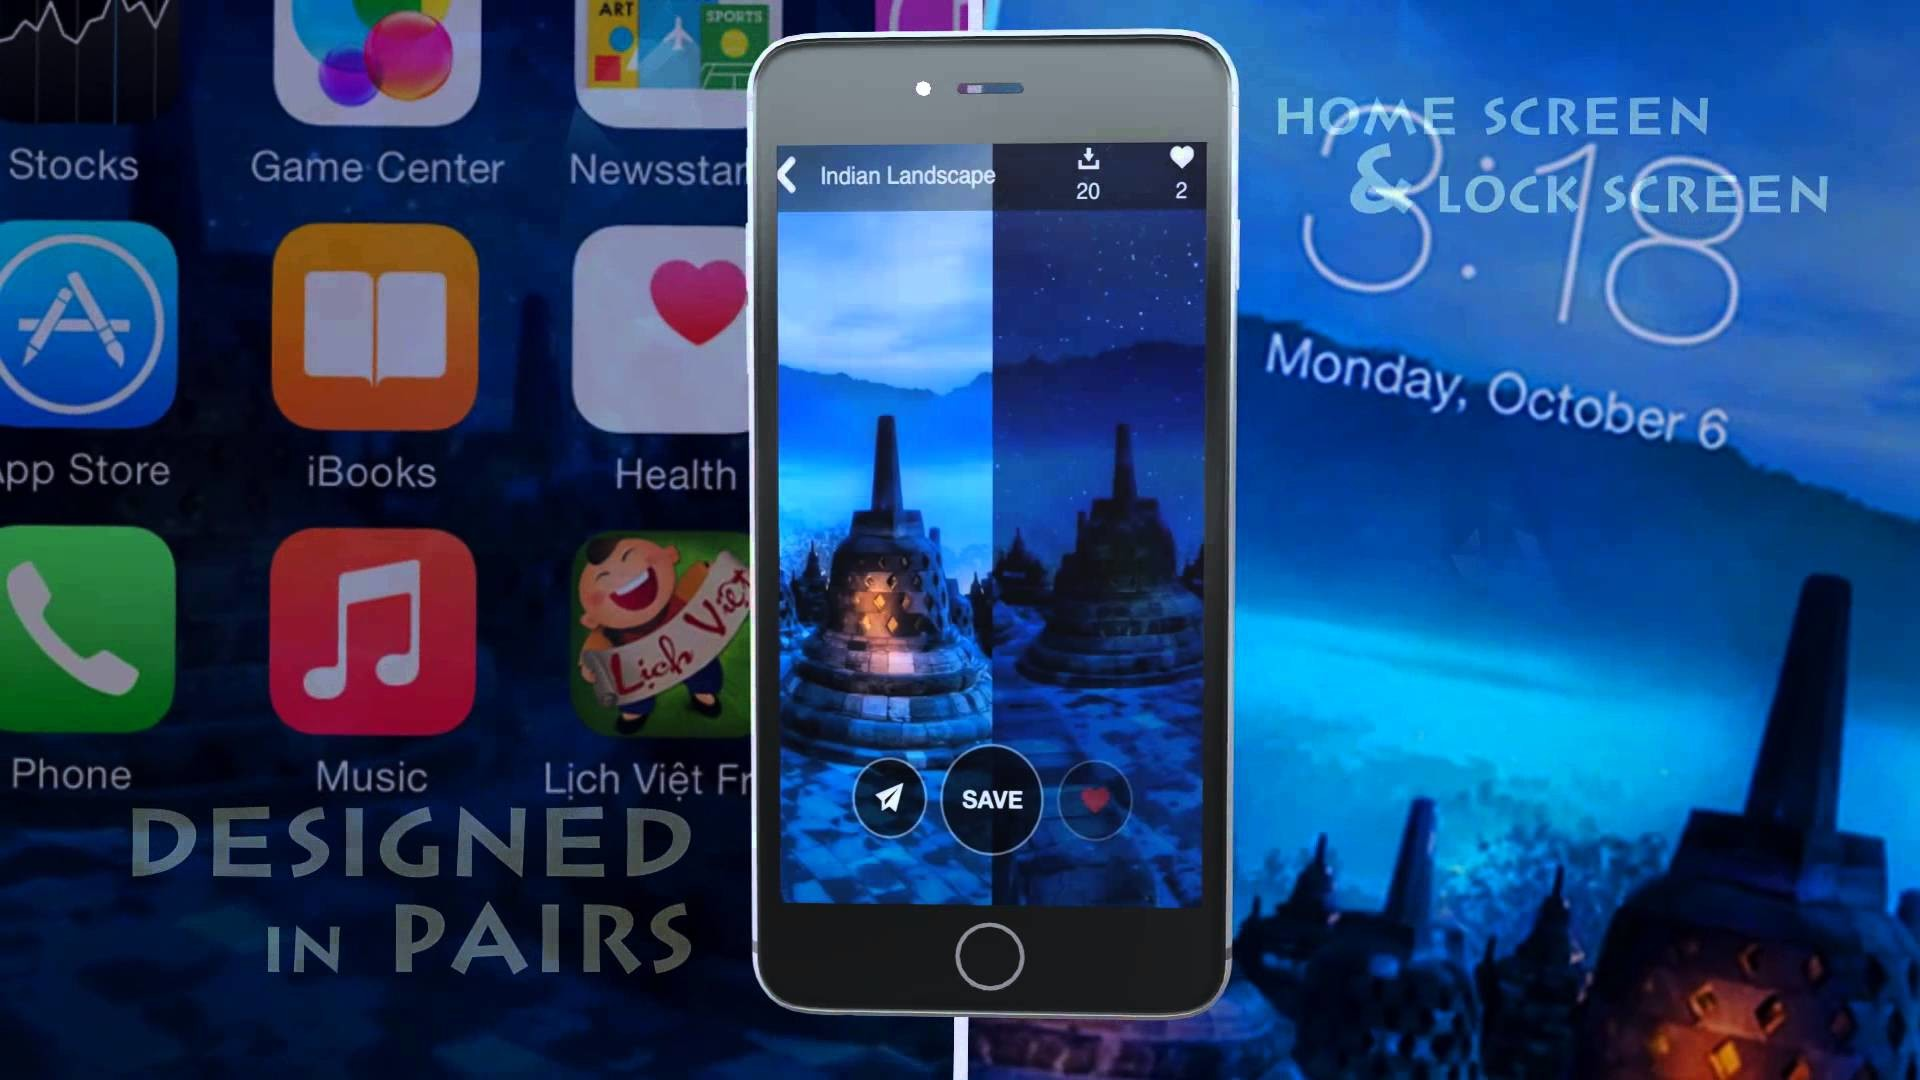 Wallpaper – Cool Home & Lock Screen for iPhone & iPad of PPCLINK Software –  YouTube